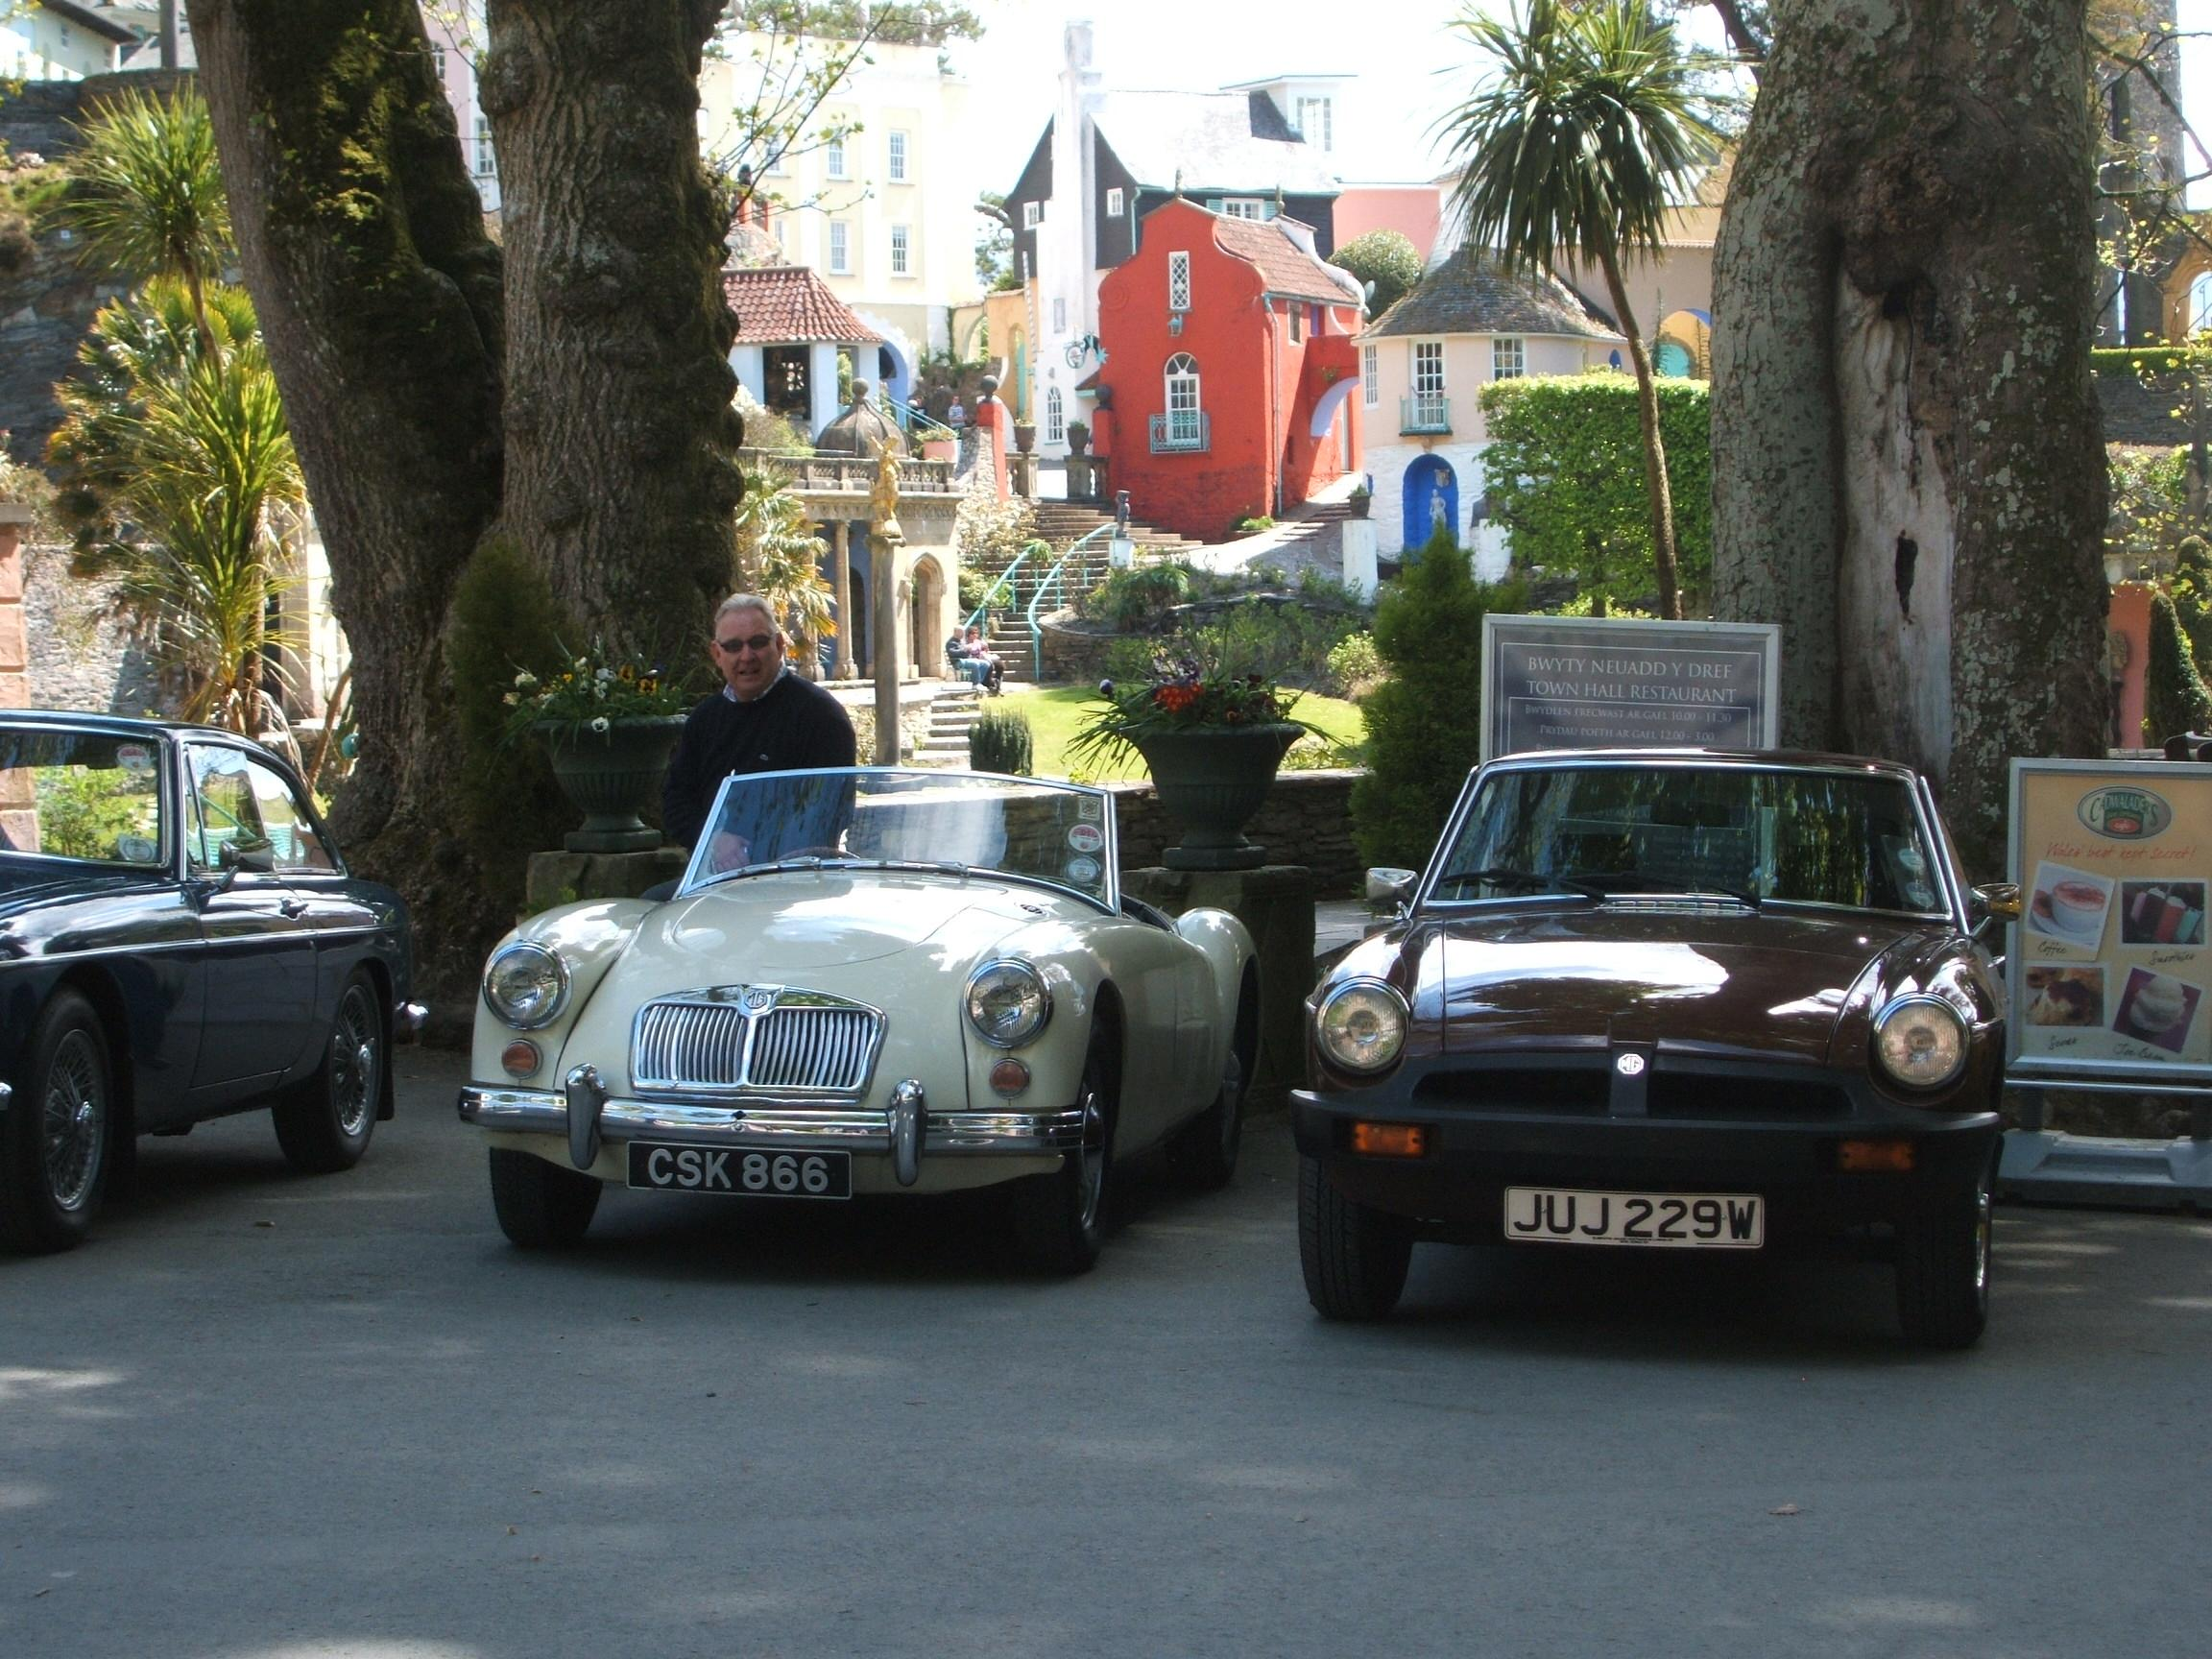 Members cars parked in Port Merrion on the tour during the Wales trip ac 2